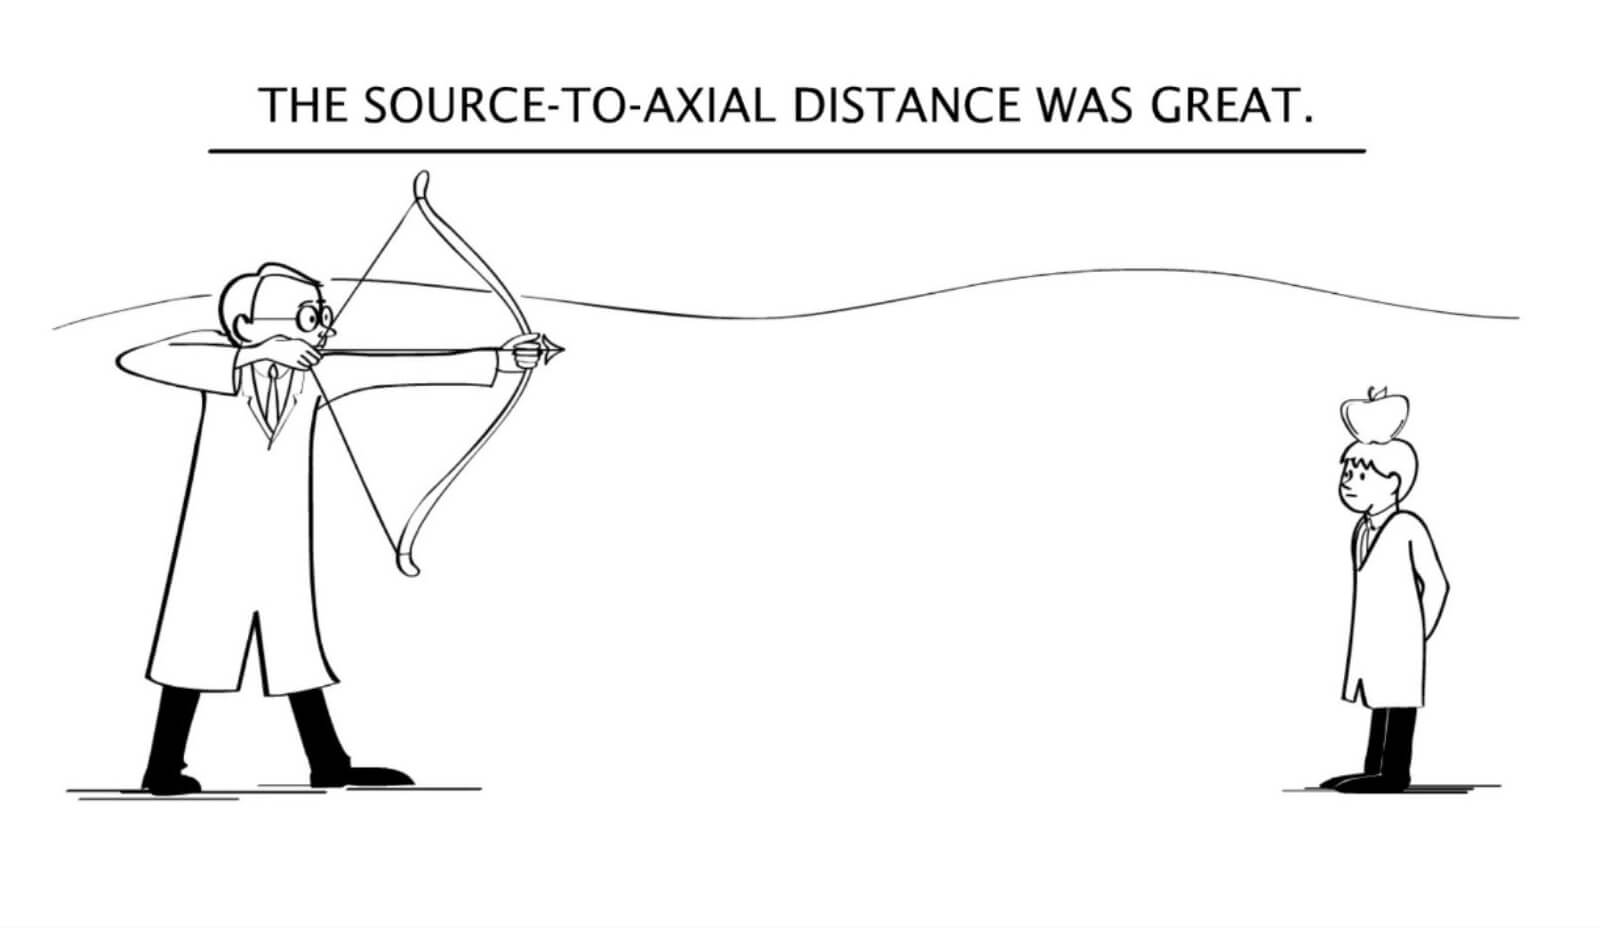 The source-to-axial distance was great. (Imagine someone aiming an arrow at the apple.)